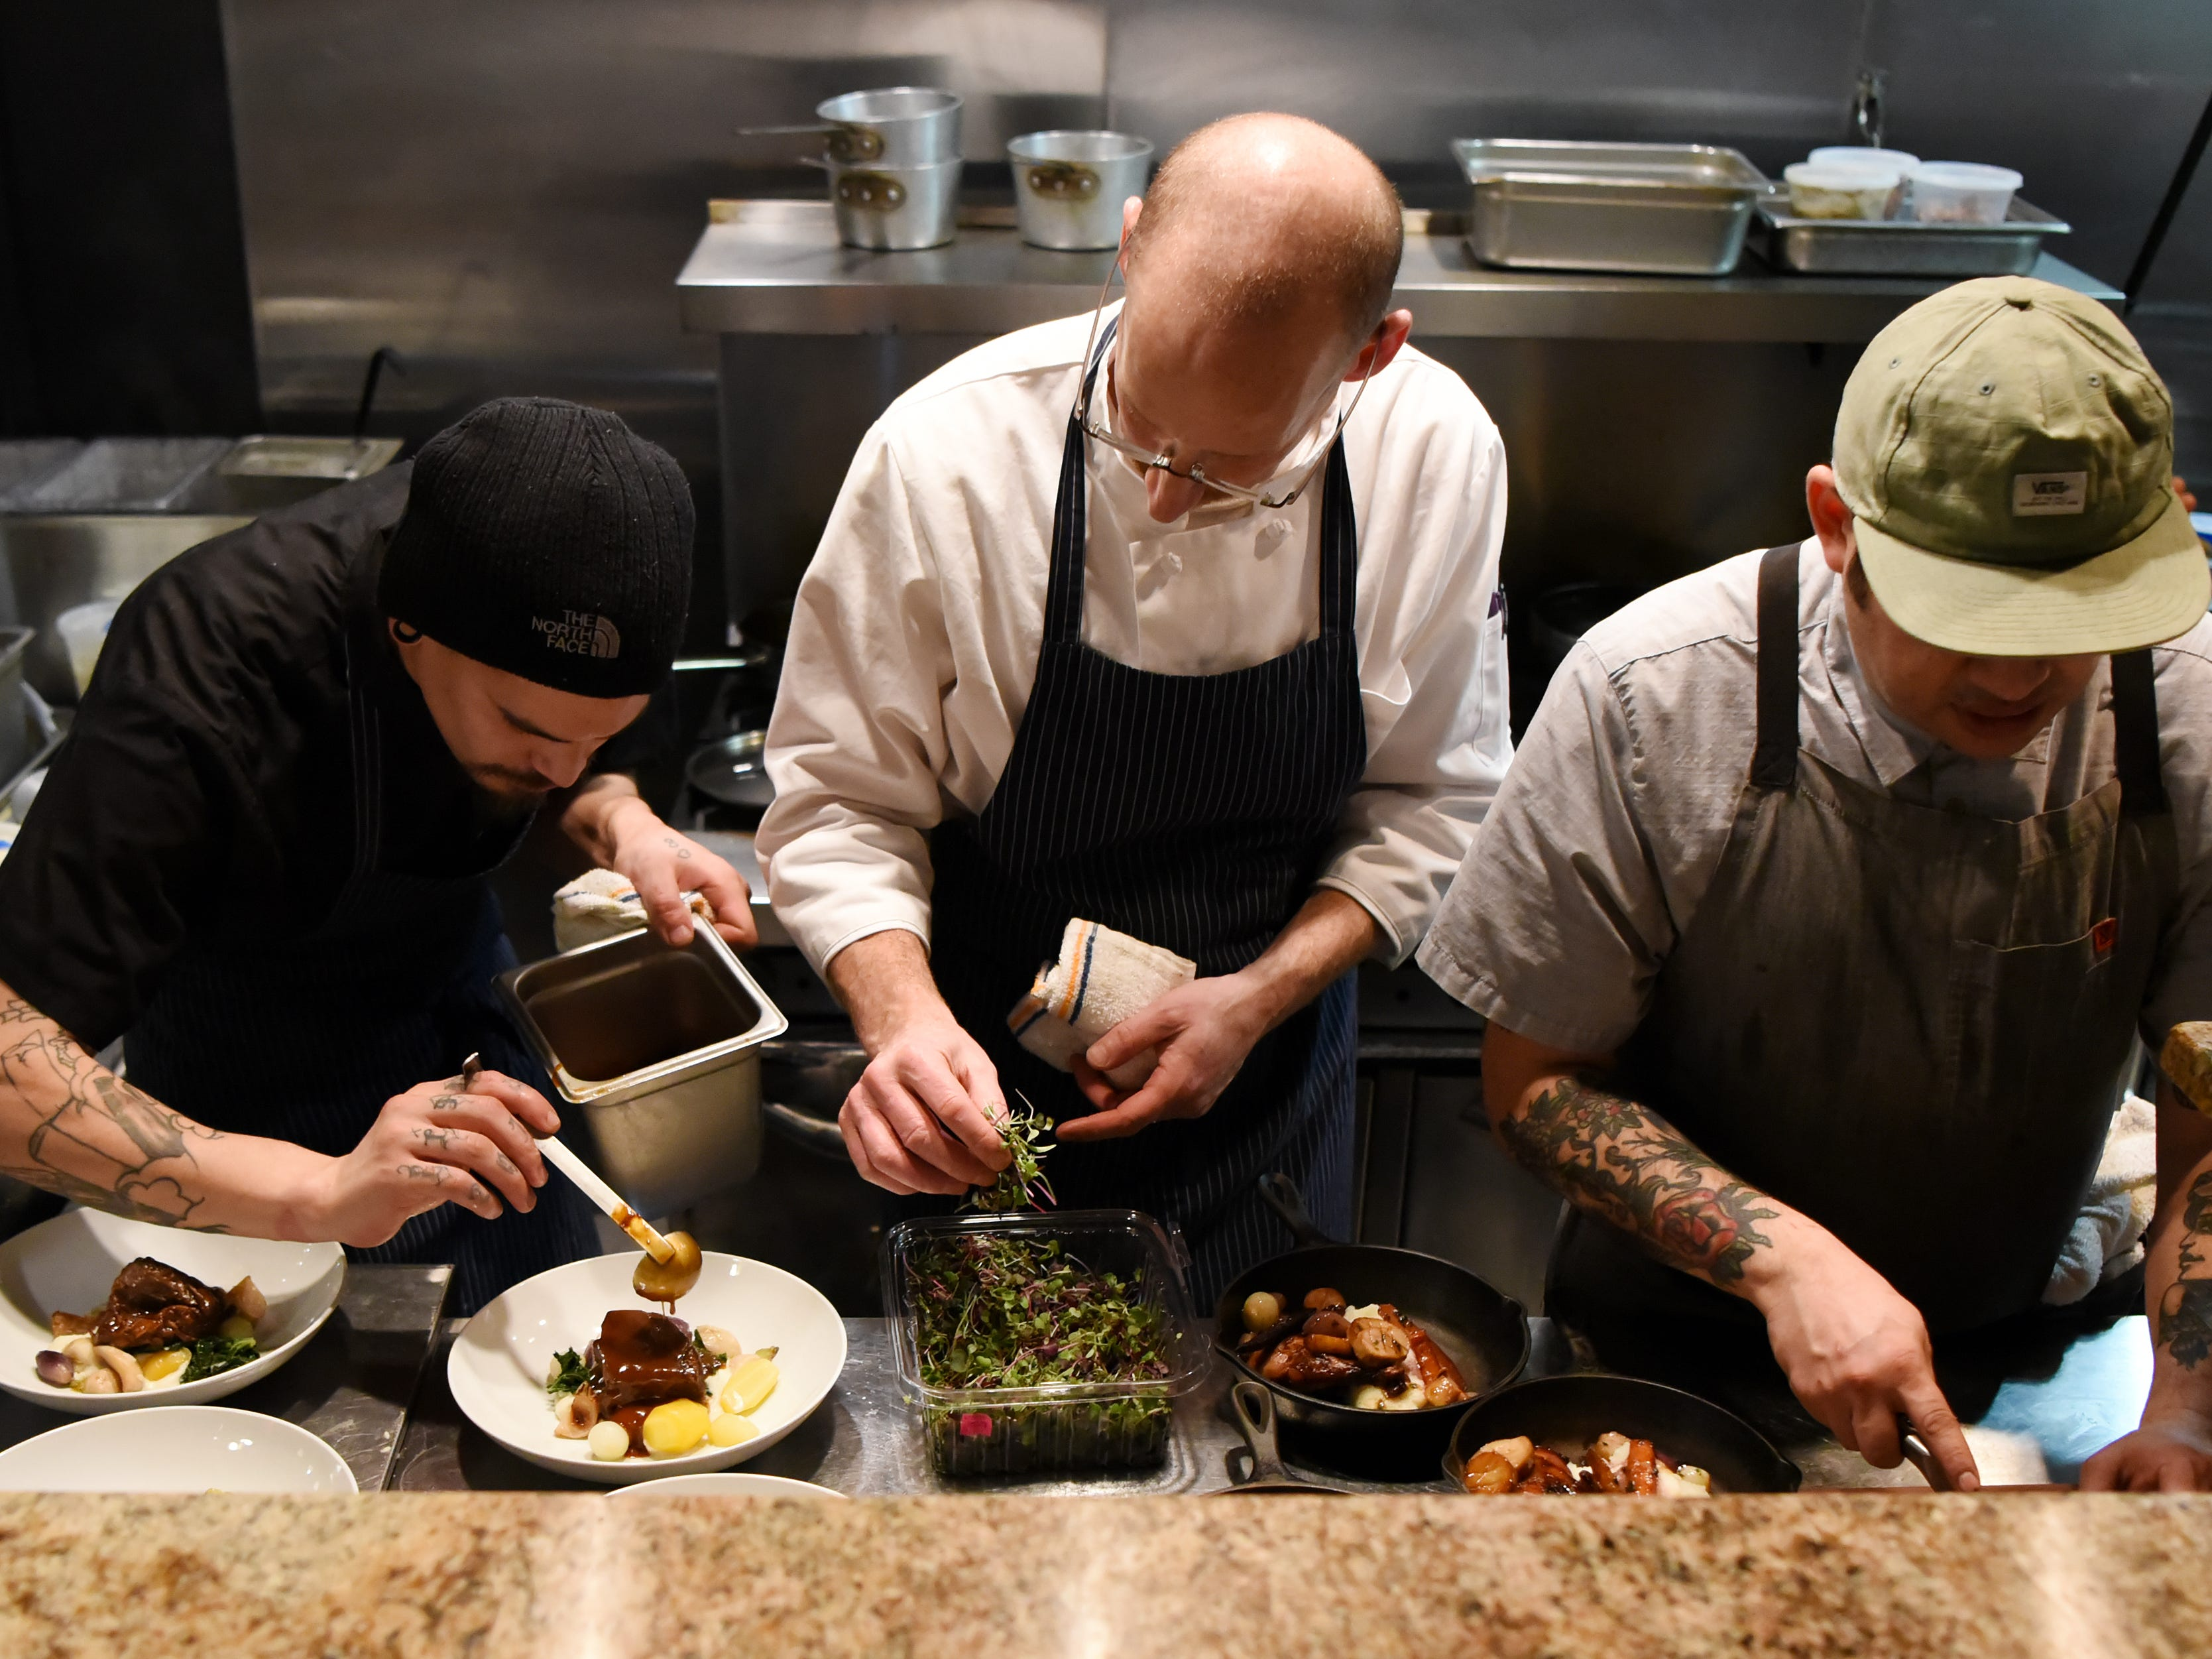 (From left) Sous chef Elvis Alvarez, Chef/Owner Ross Goldflam and Chef de cuisine Jonathan Pacheco plate dinners during the dinner with Esther event at Technique, a French restaurant in Westwood on Thursday February 7, 2019.